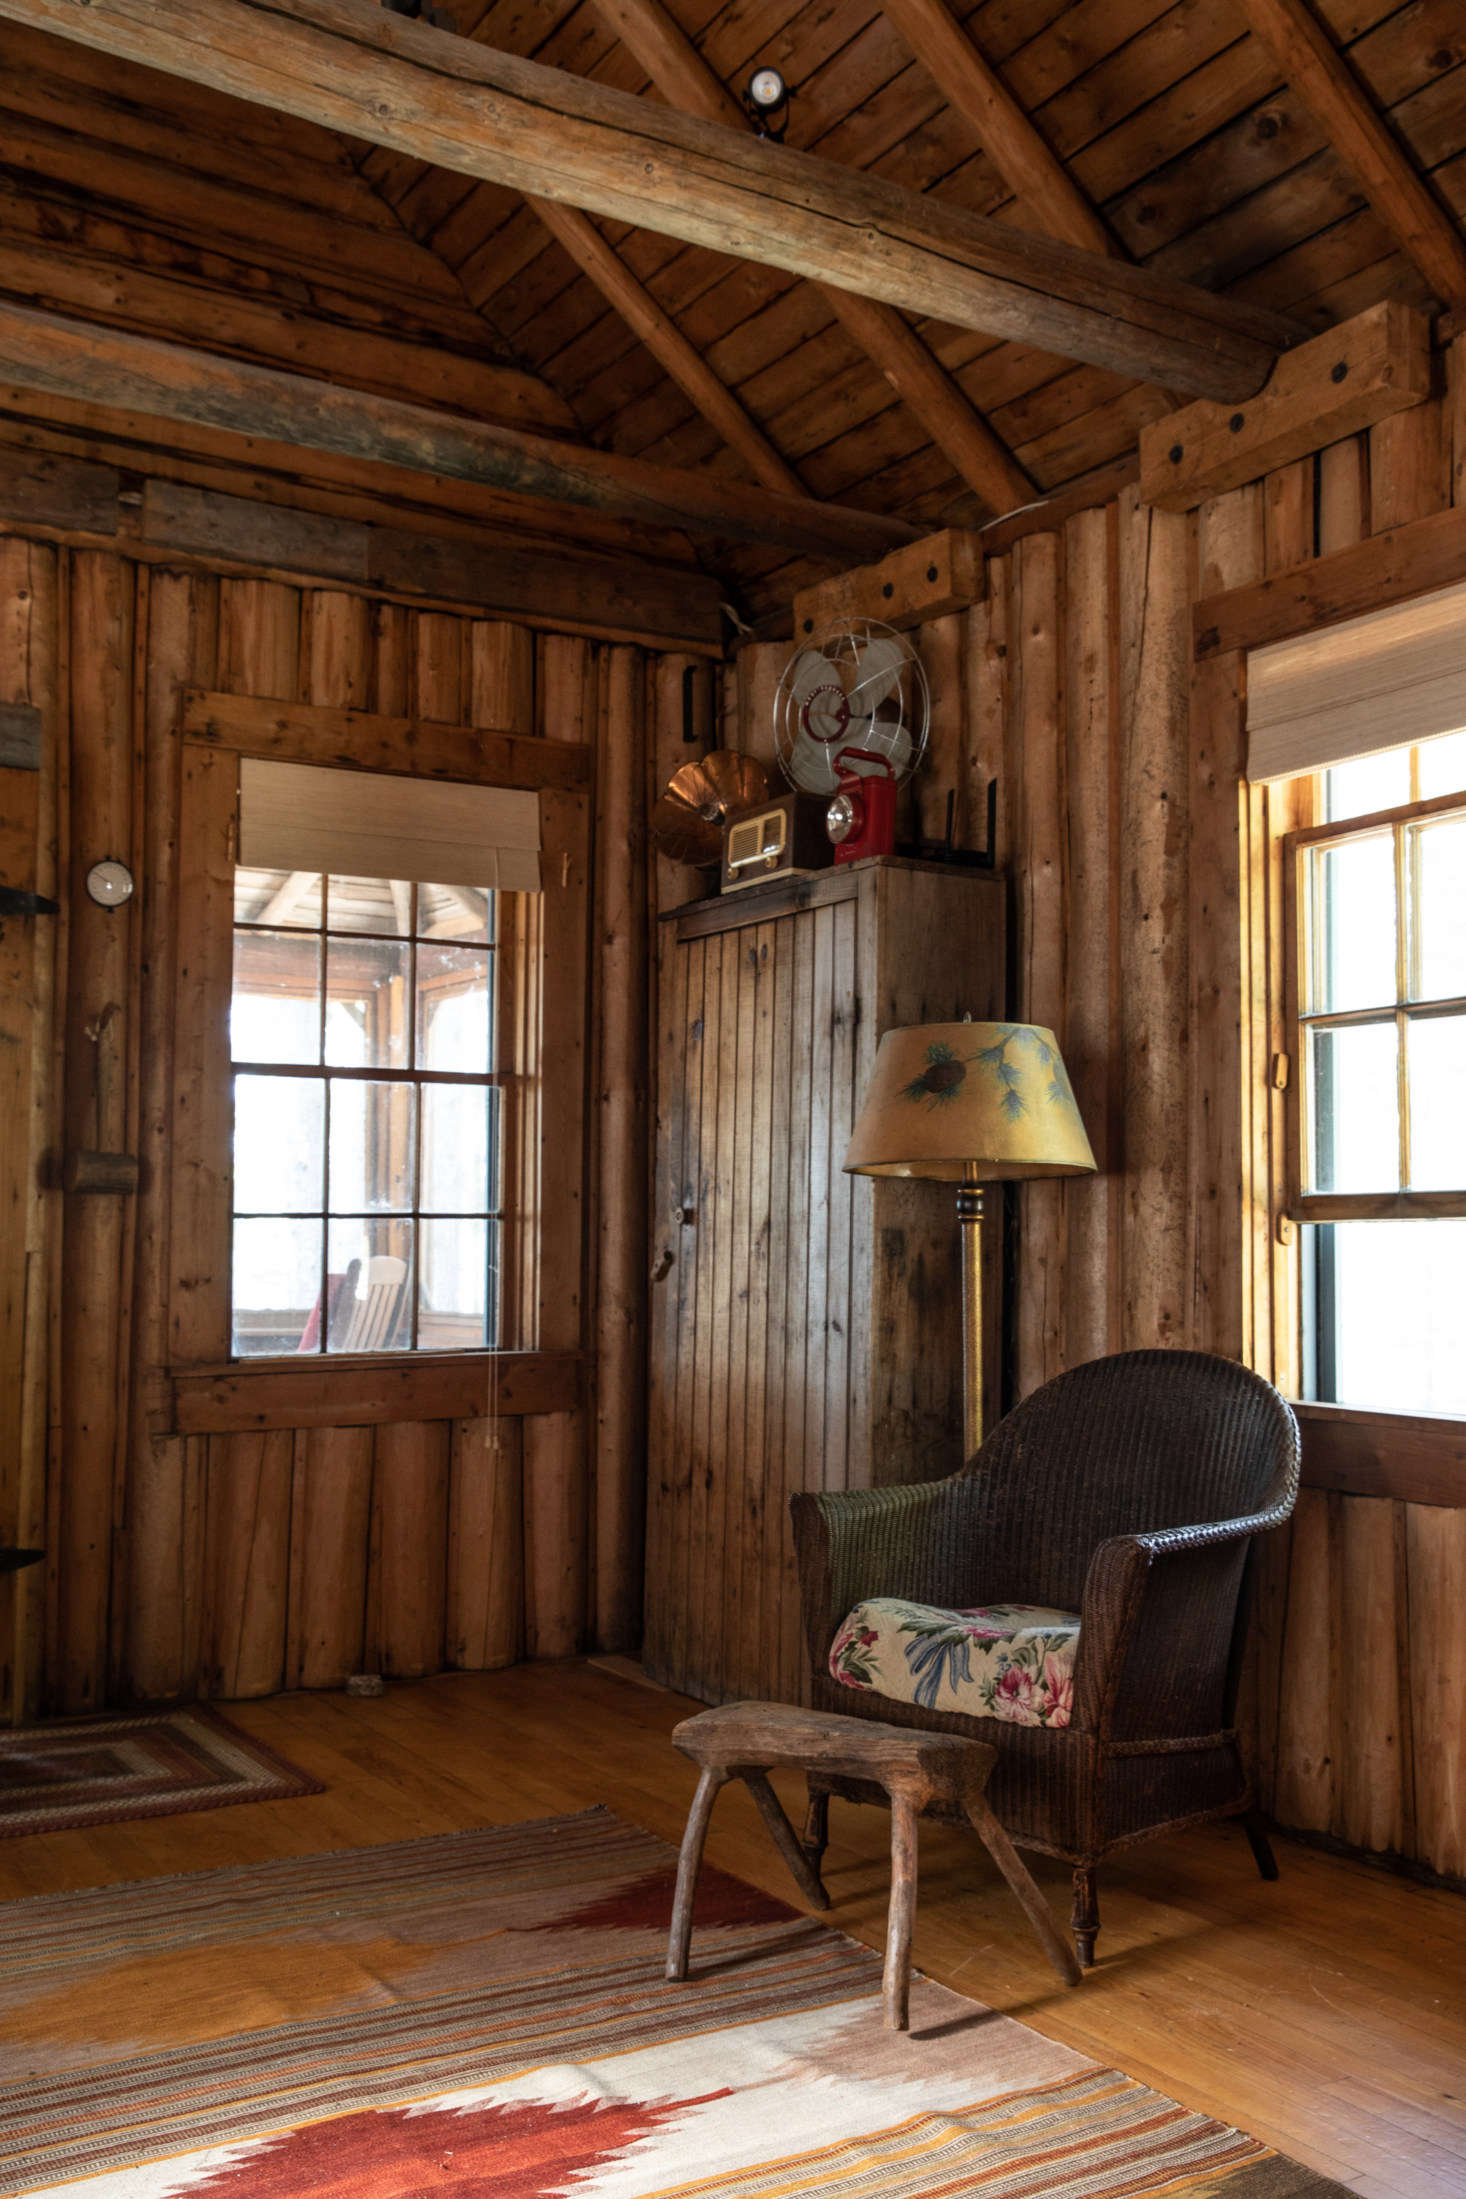 Much of the furniture in the log cabin came with the place: &#8